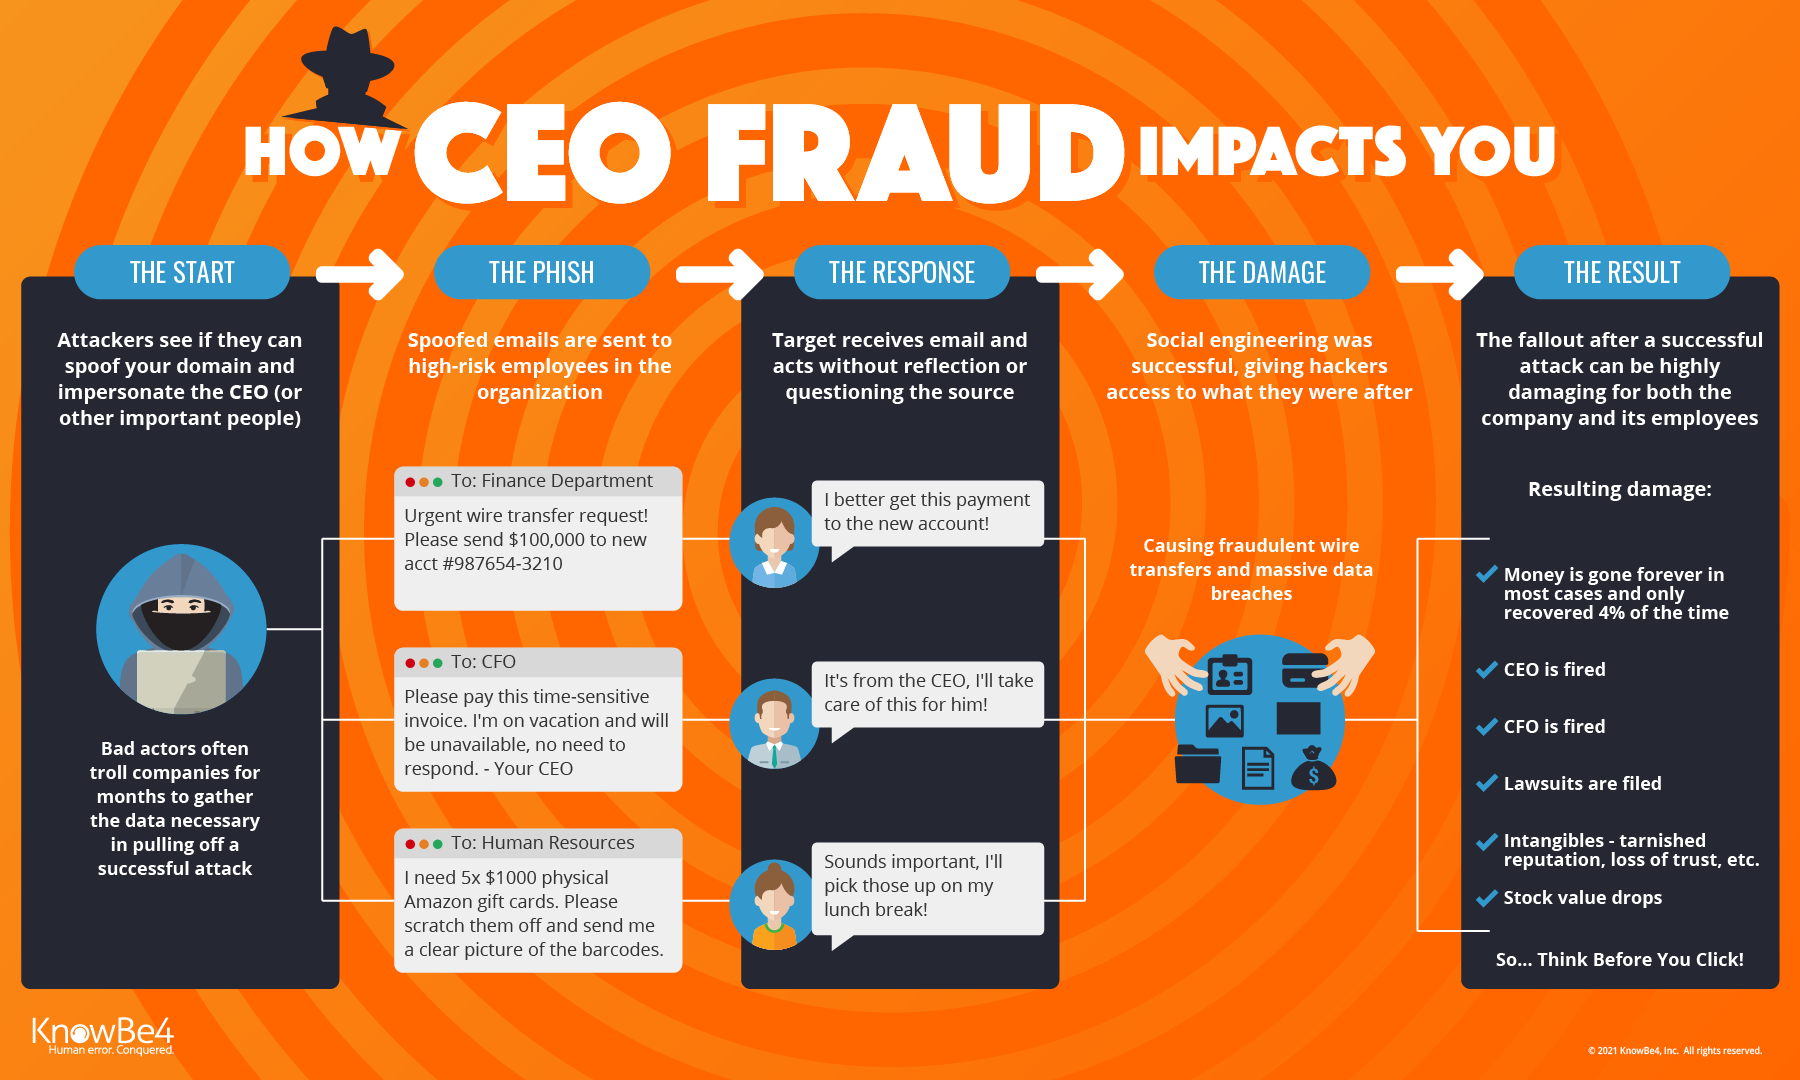 KnowBe4 Warns of CEO Fraud